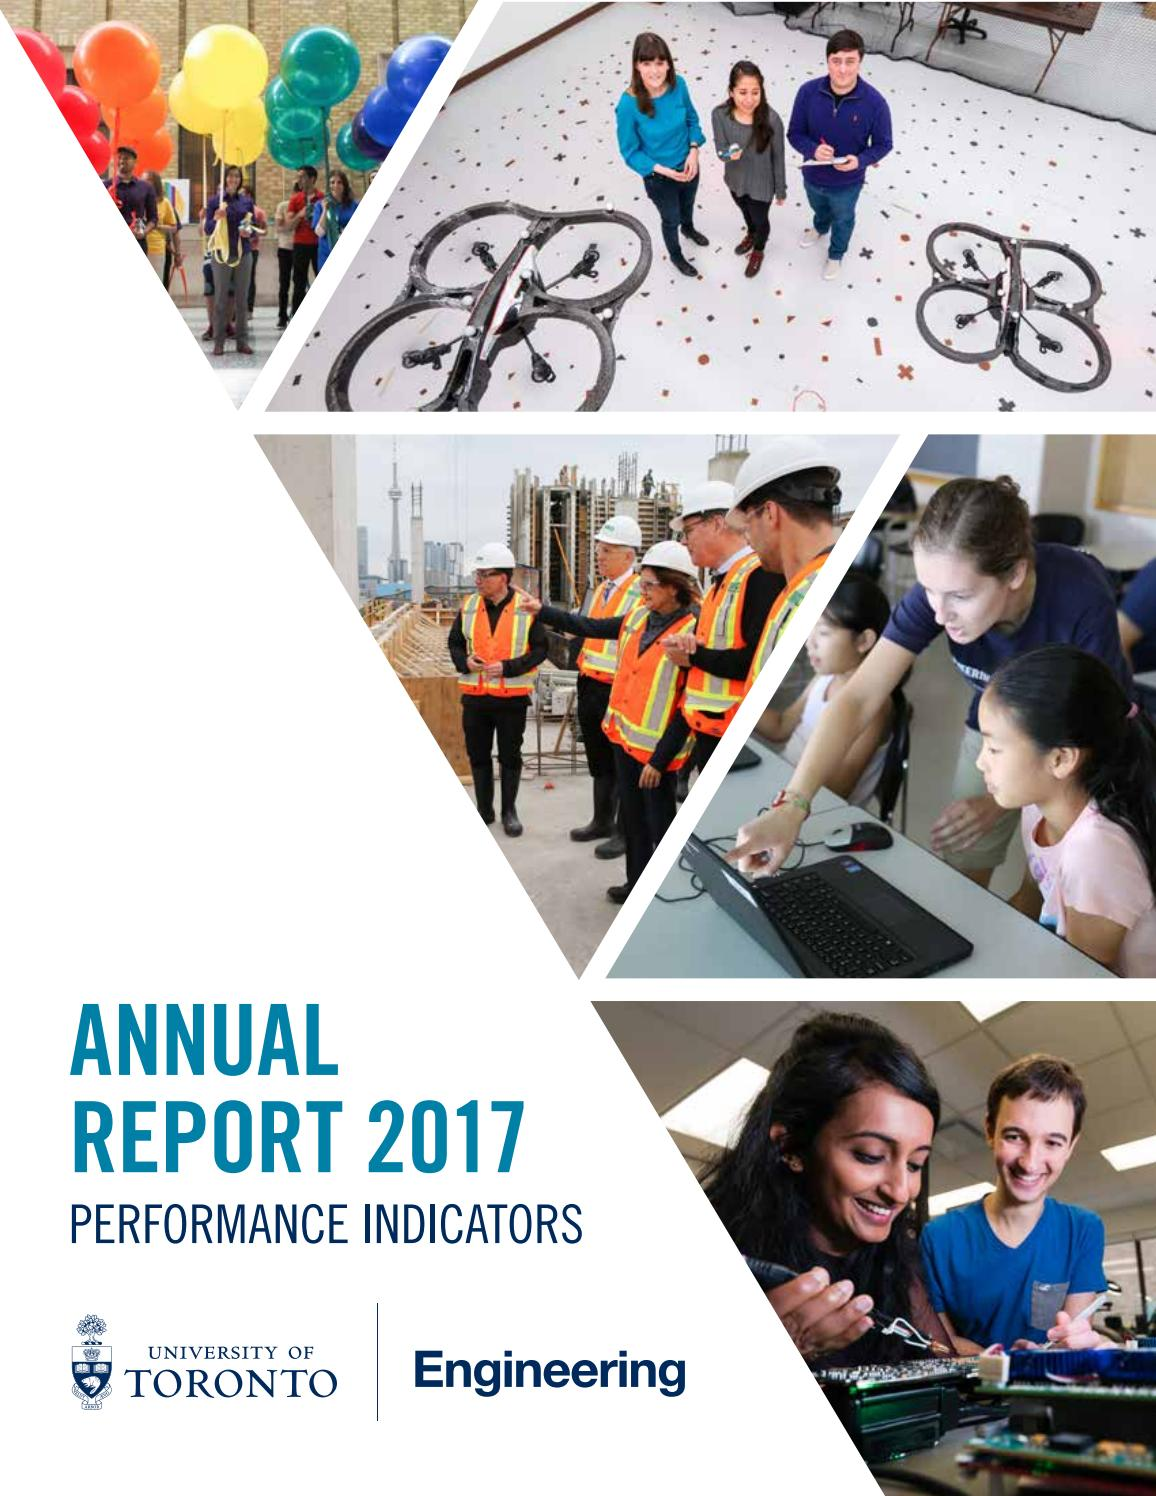 Annual Report 2017 Performance Indicators By University Of Toronto Unlabeled Diagram The Muscular System Heather Blog Faculty Applied Science Engineering Issuu